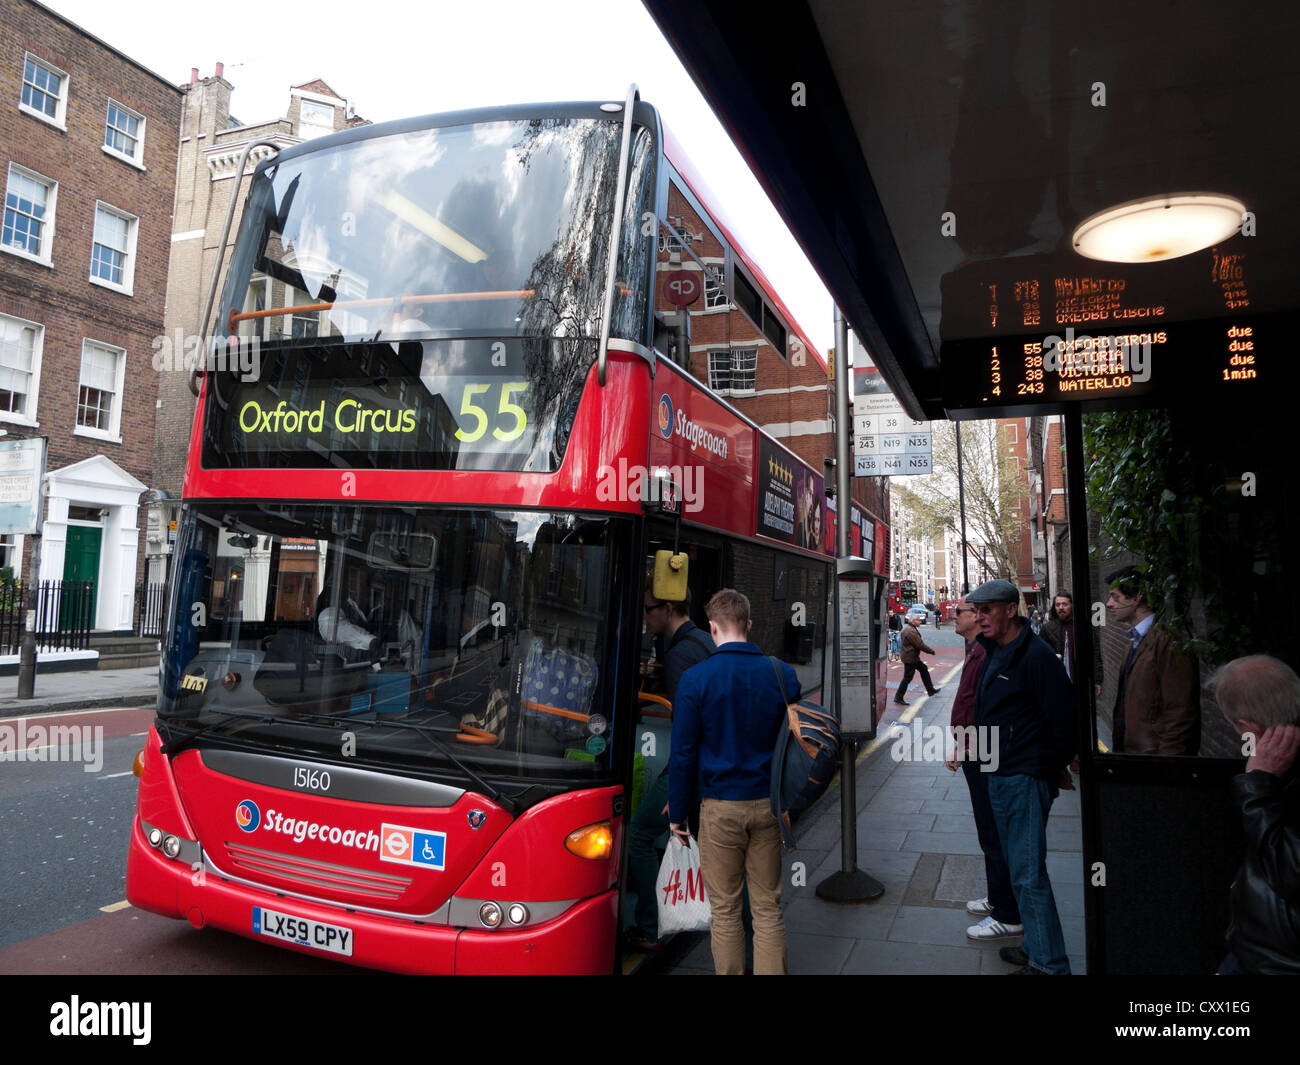 People boarding a 55 red double decker bus destined for Oxford Circus London England UK KATHY DEWITT - Stock Image